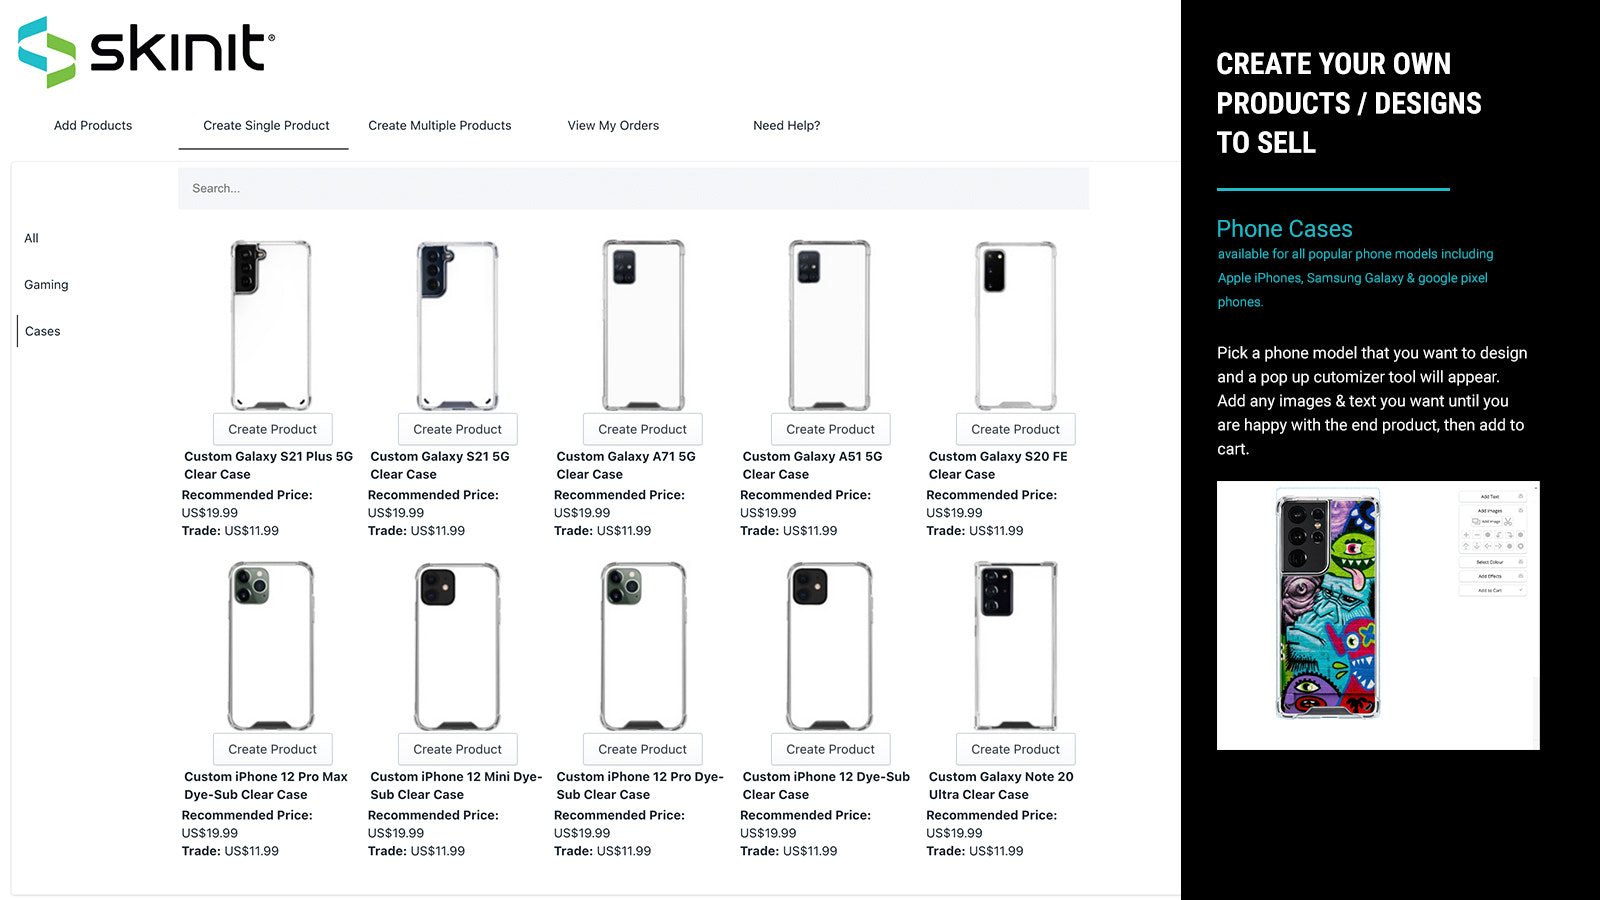 Pick and Customize your phone model